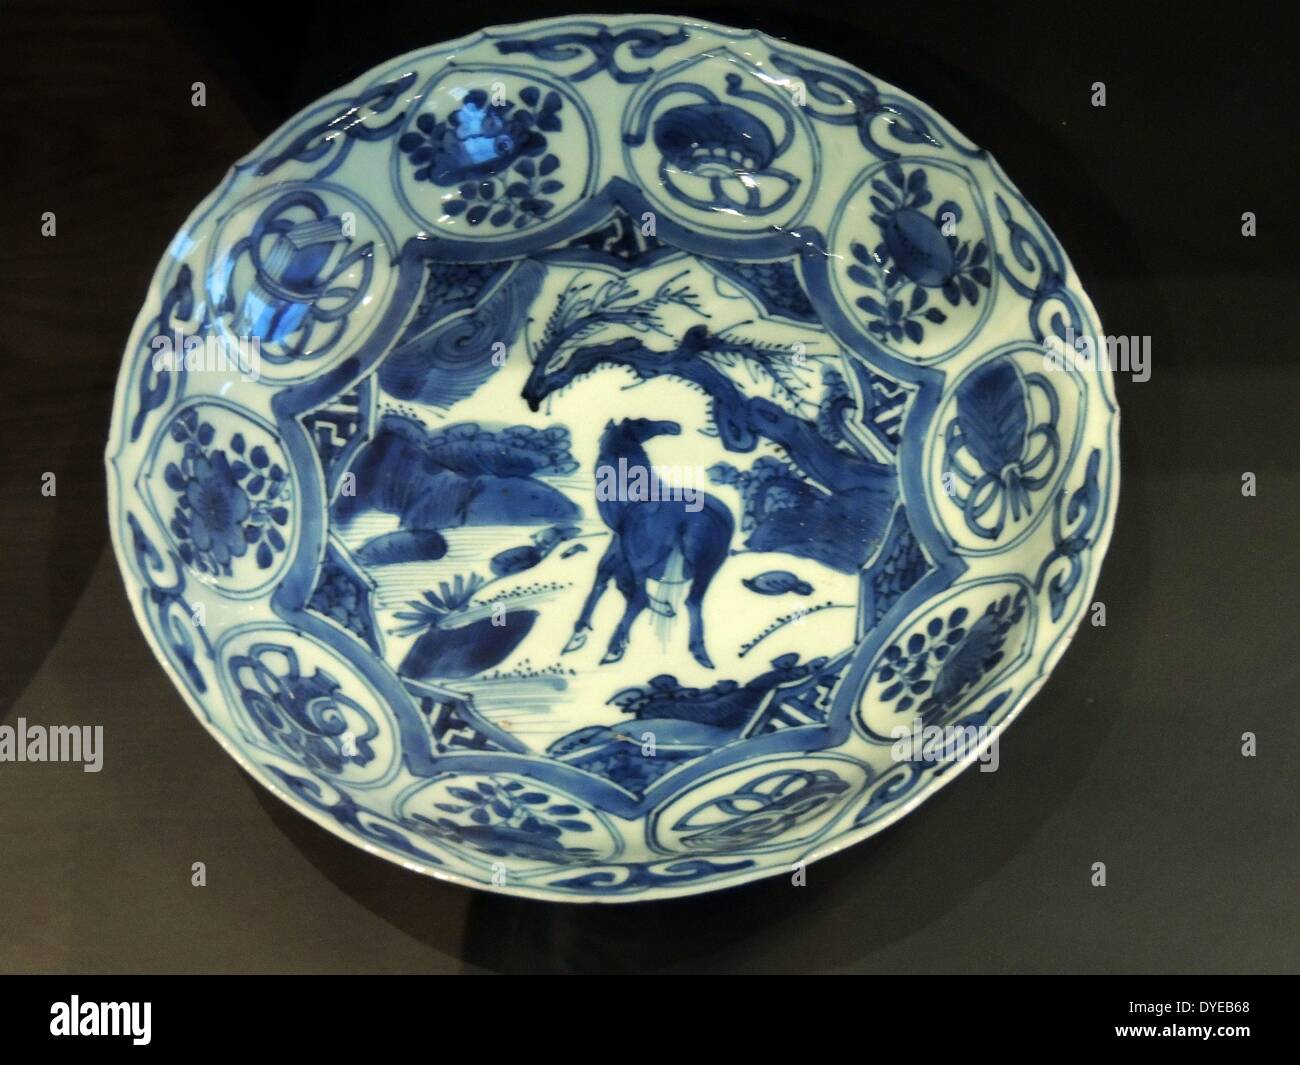 Chinese Porcelain High Resolution Stock Photography And Images Alamy